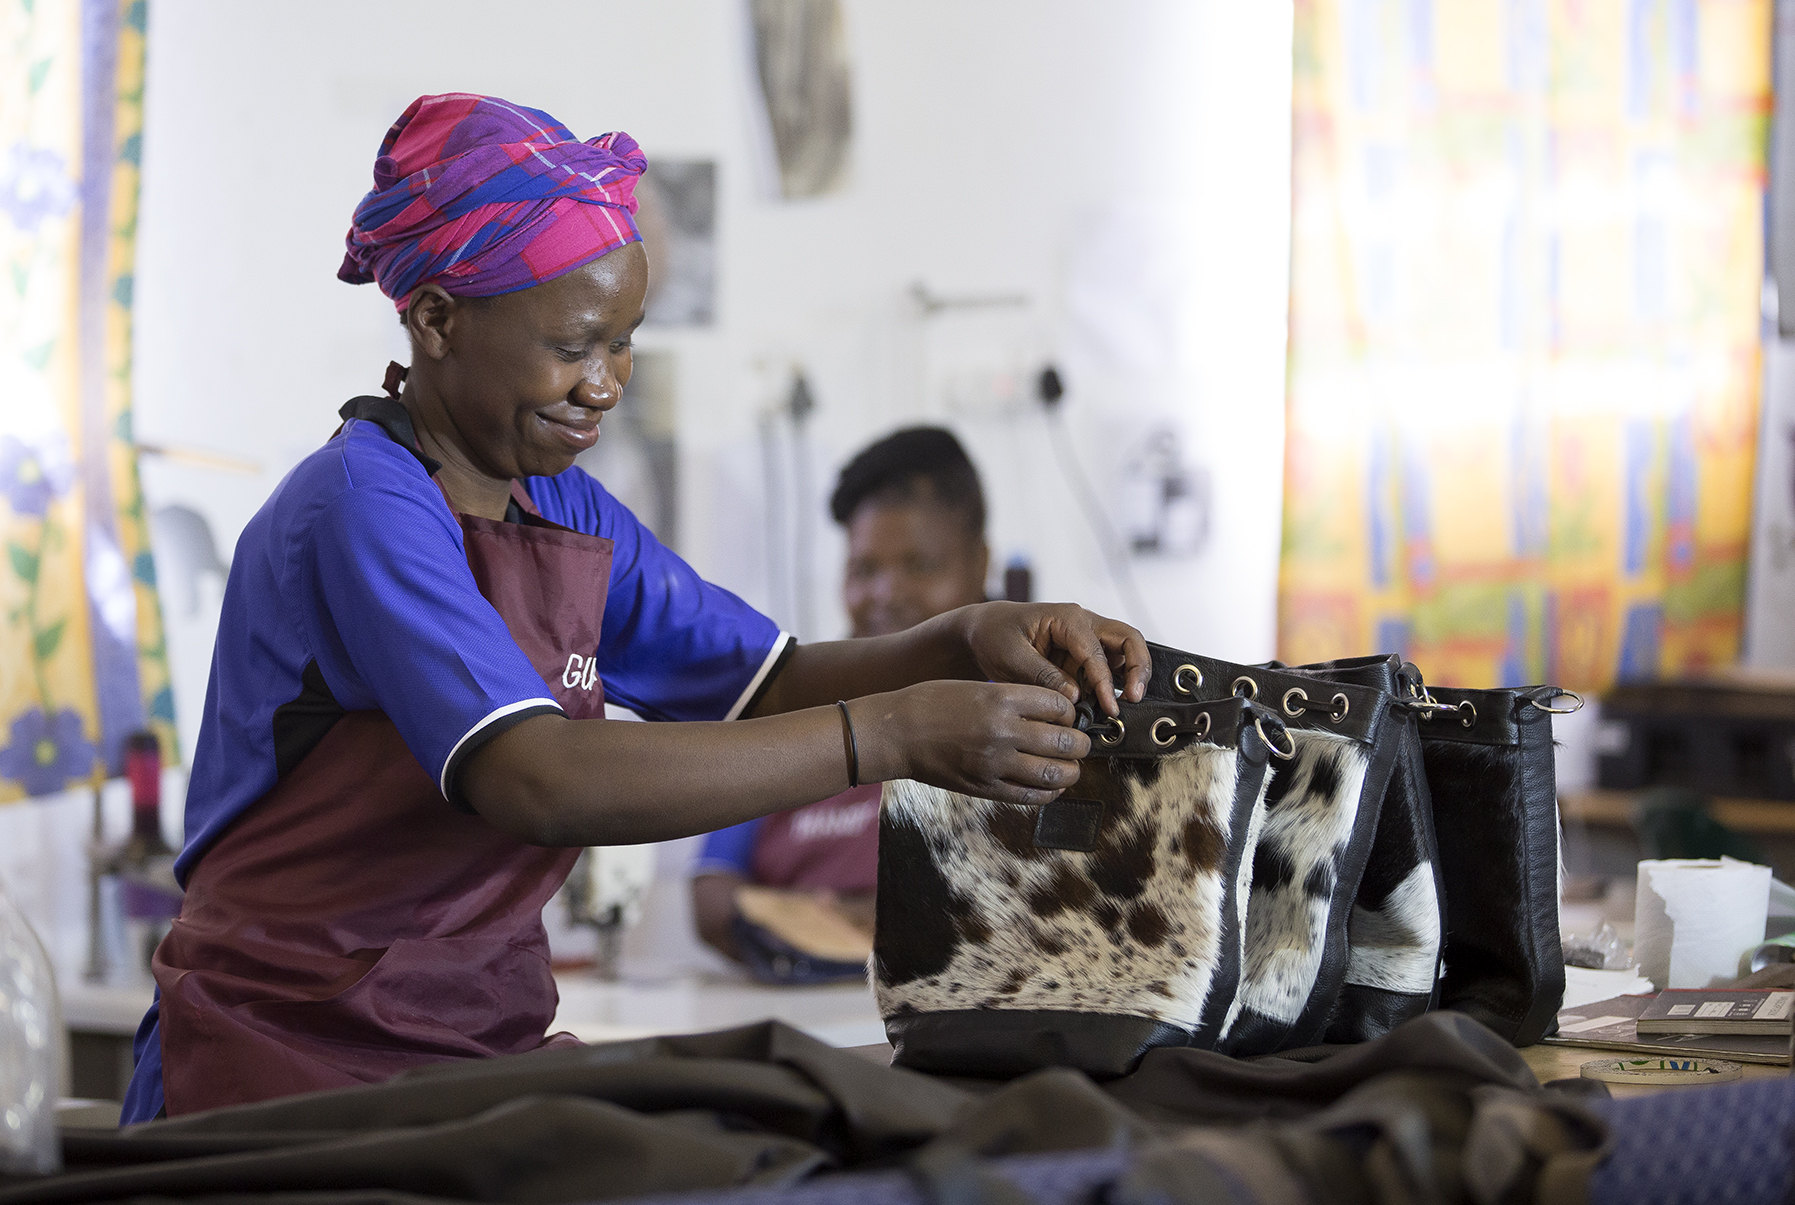 Fairtrade fortnight, ethically made, slow fashion, cowhide, handmade, artisanmade, socialimpact, sustainablefashion